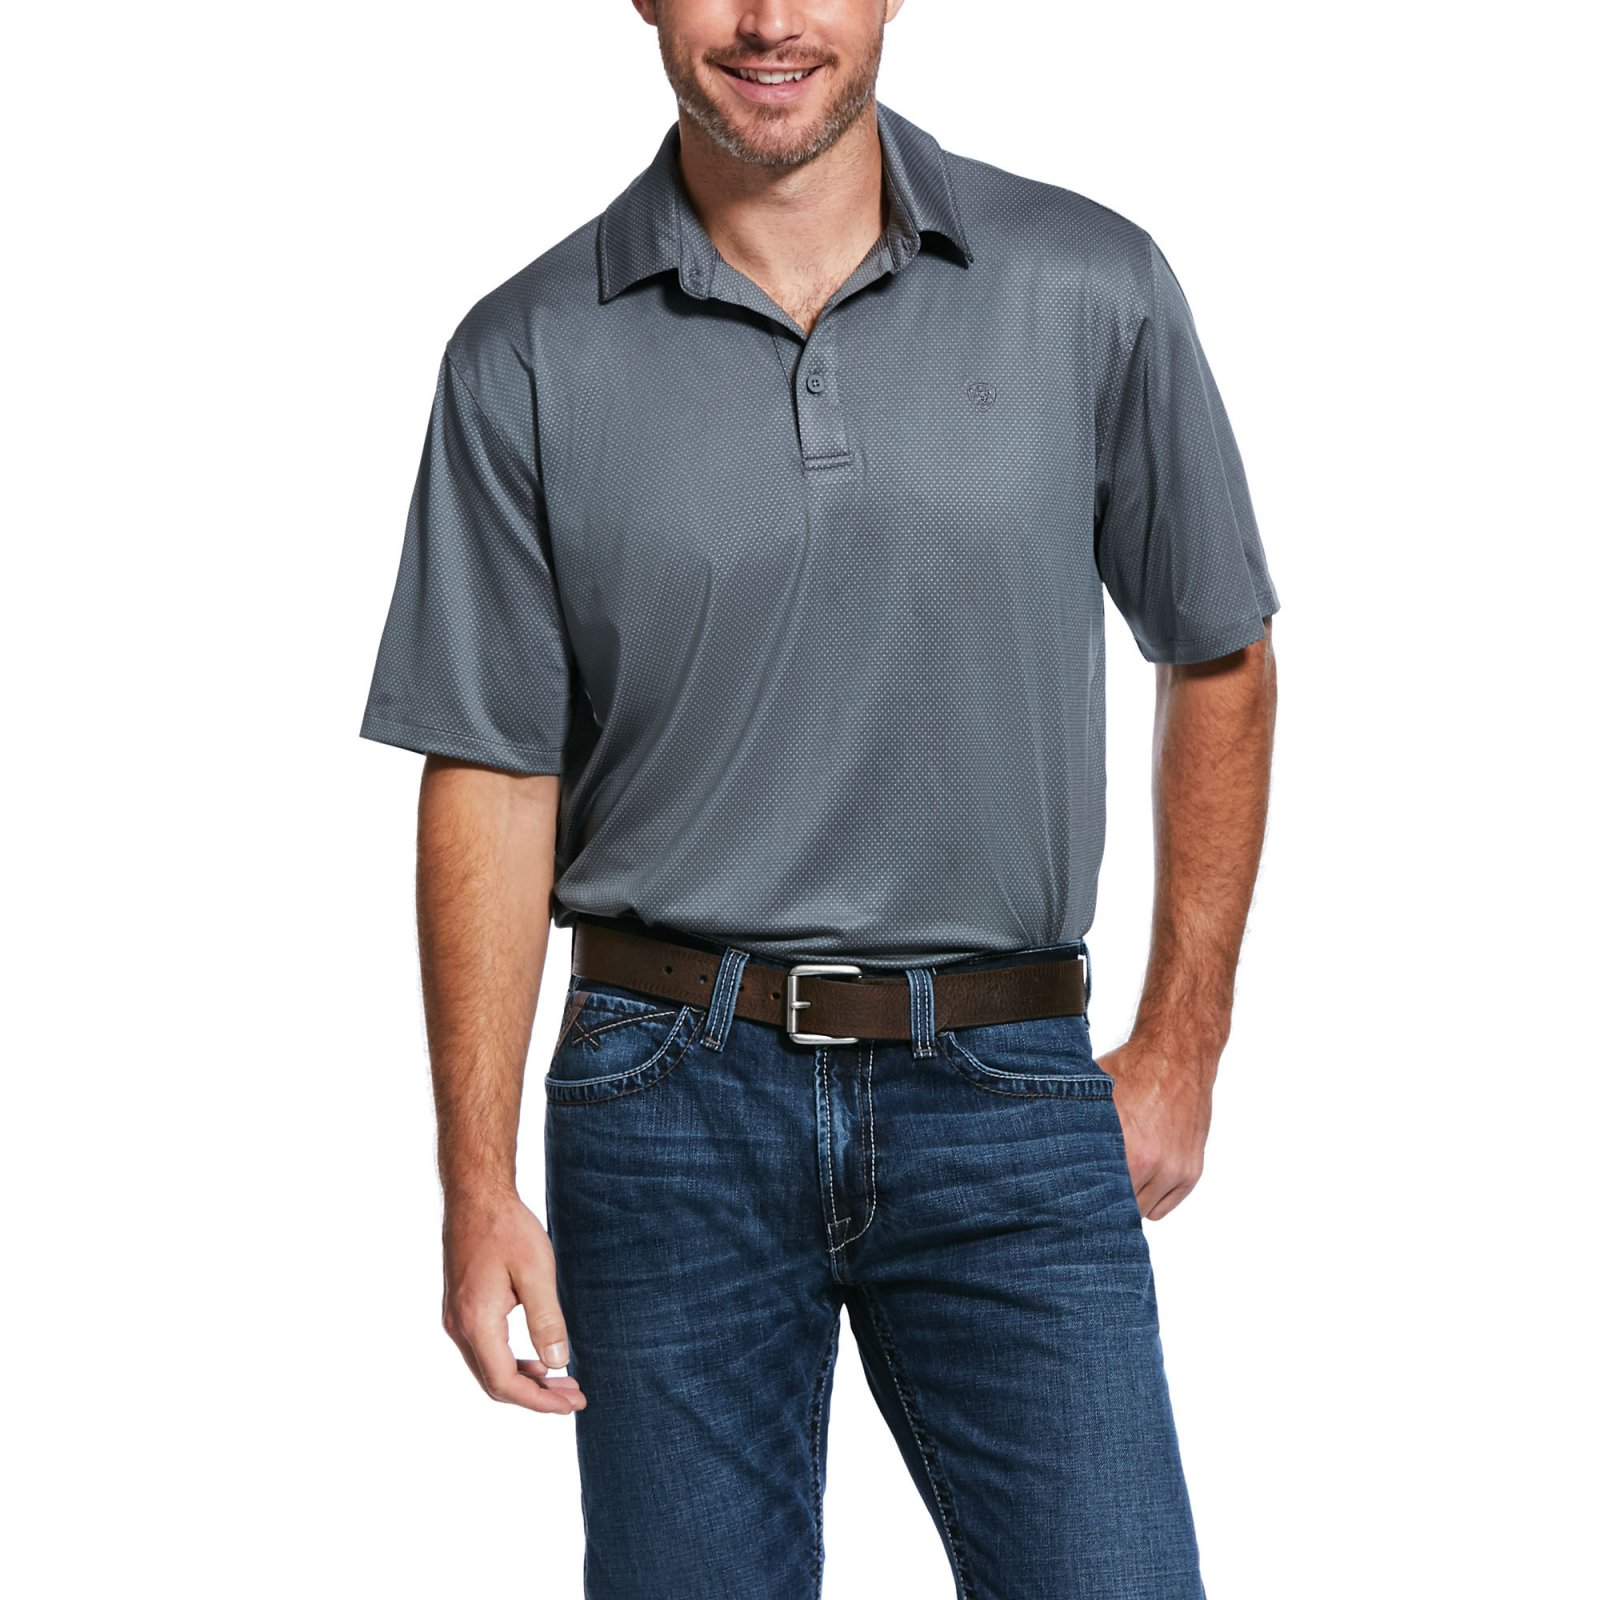 Birdseye Button Polo from Ariat